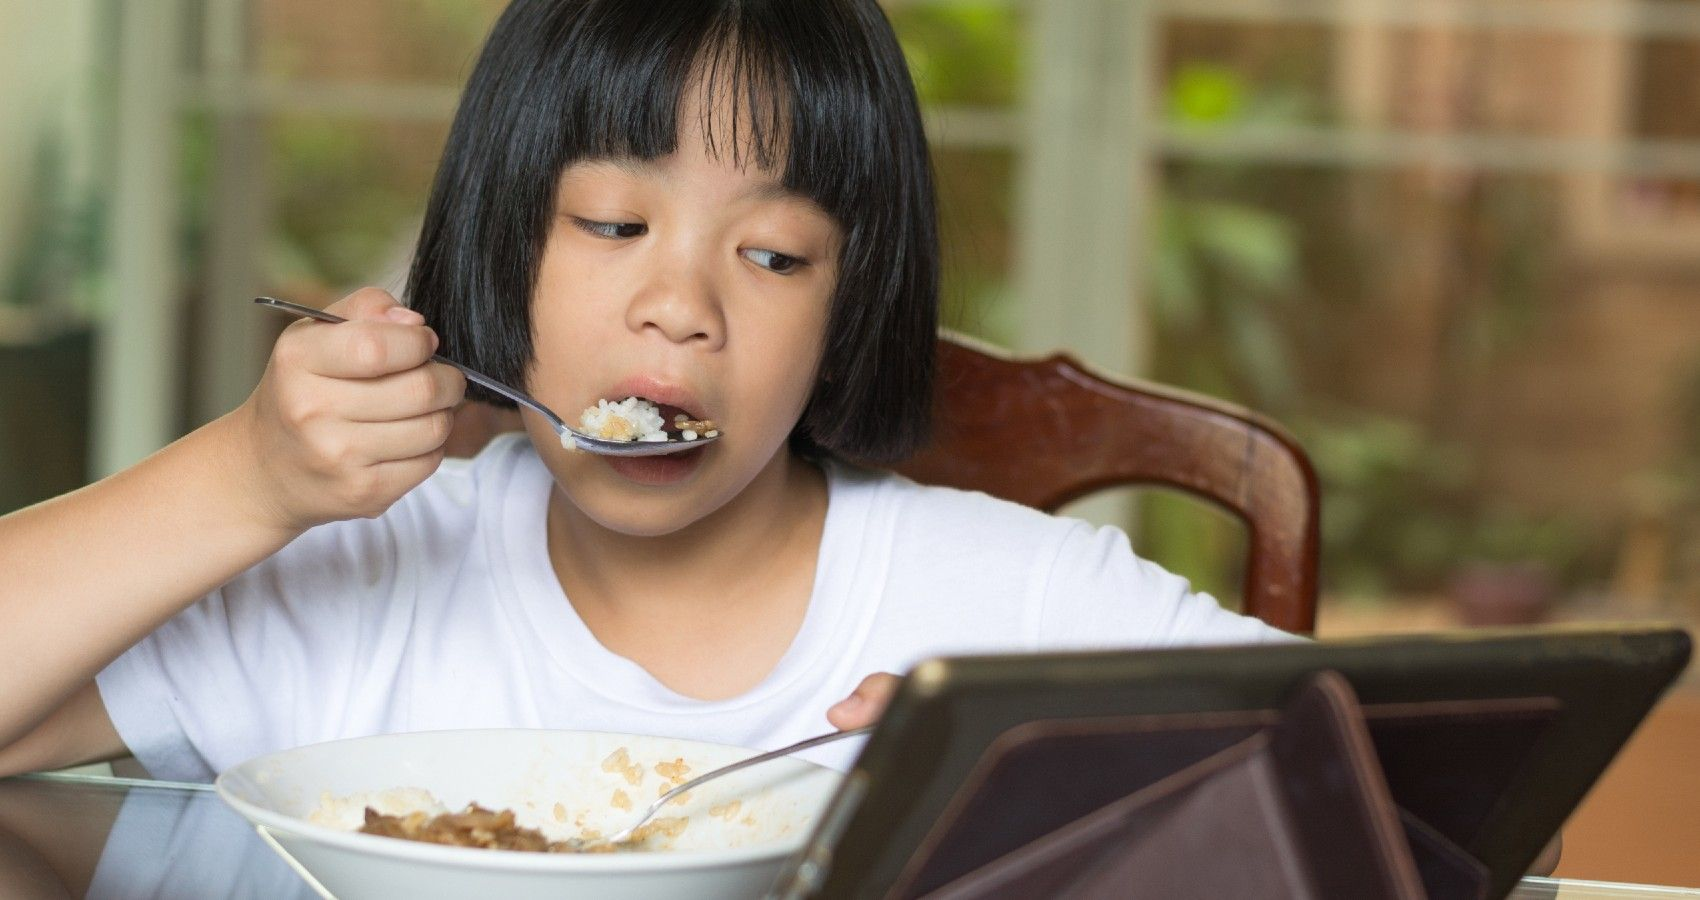 Screen Time Influences Kids' Eating Habits, Says Study | Moms.com